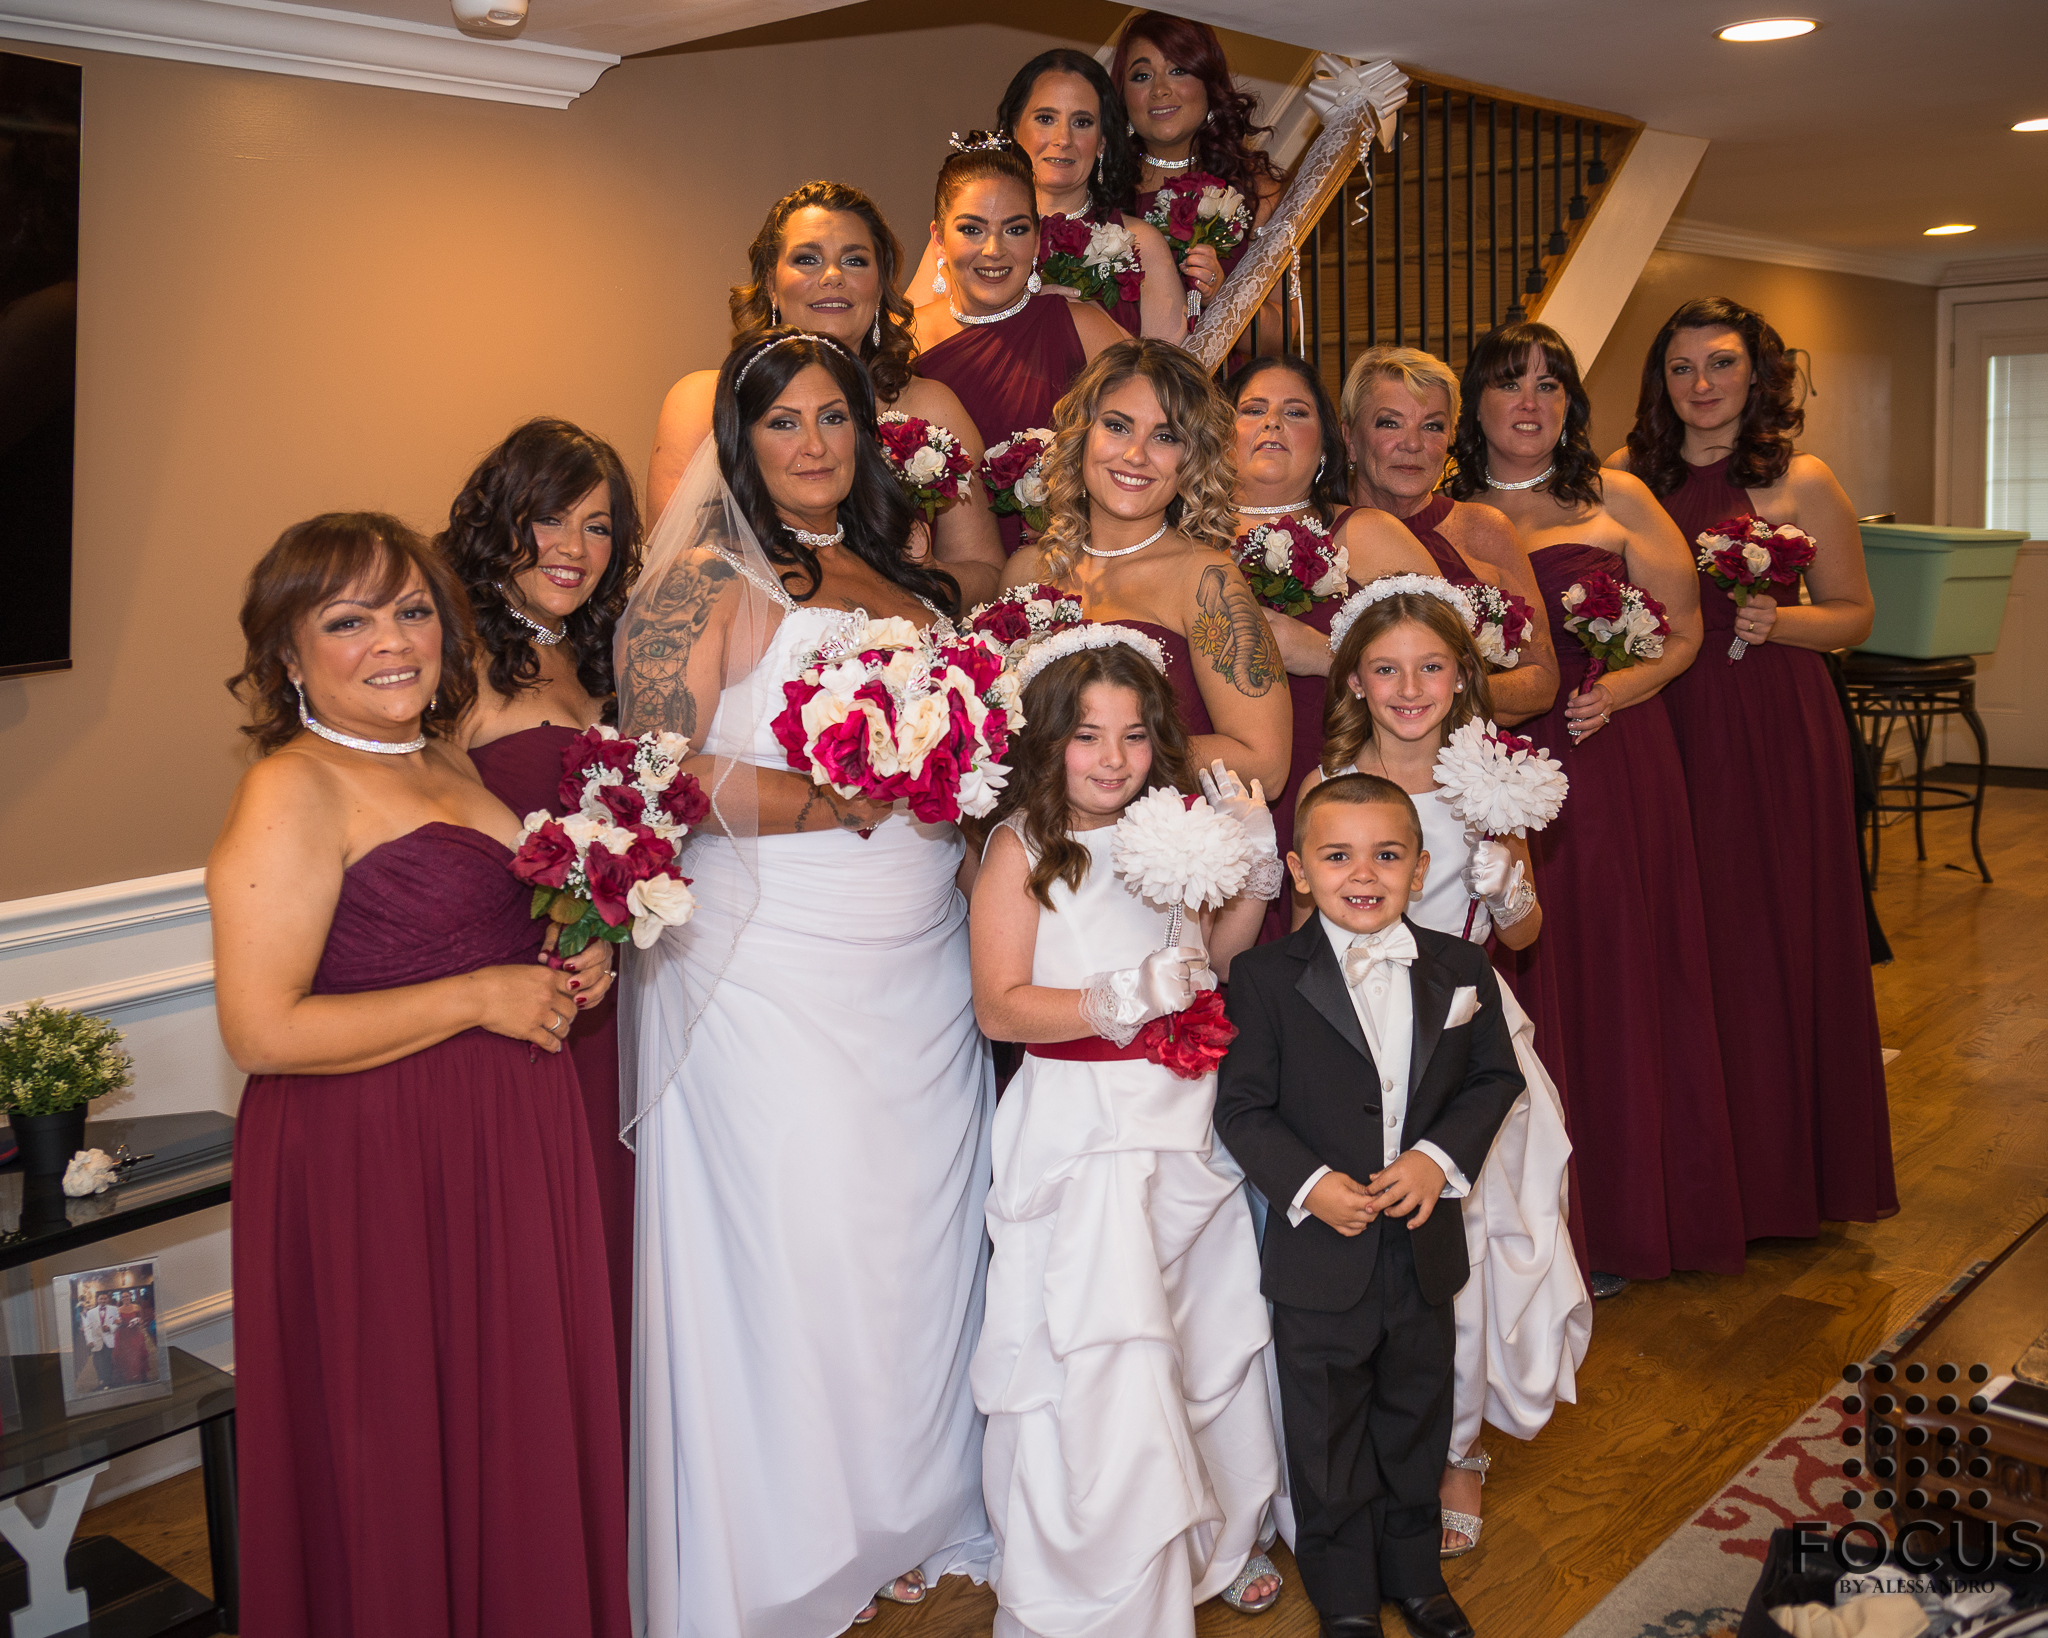 Denise and Dave wedding 2017 (138 of 785).jpg